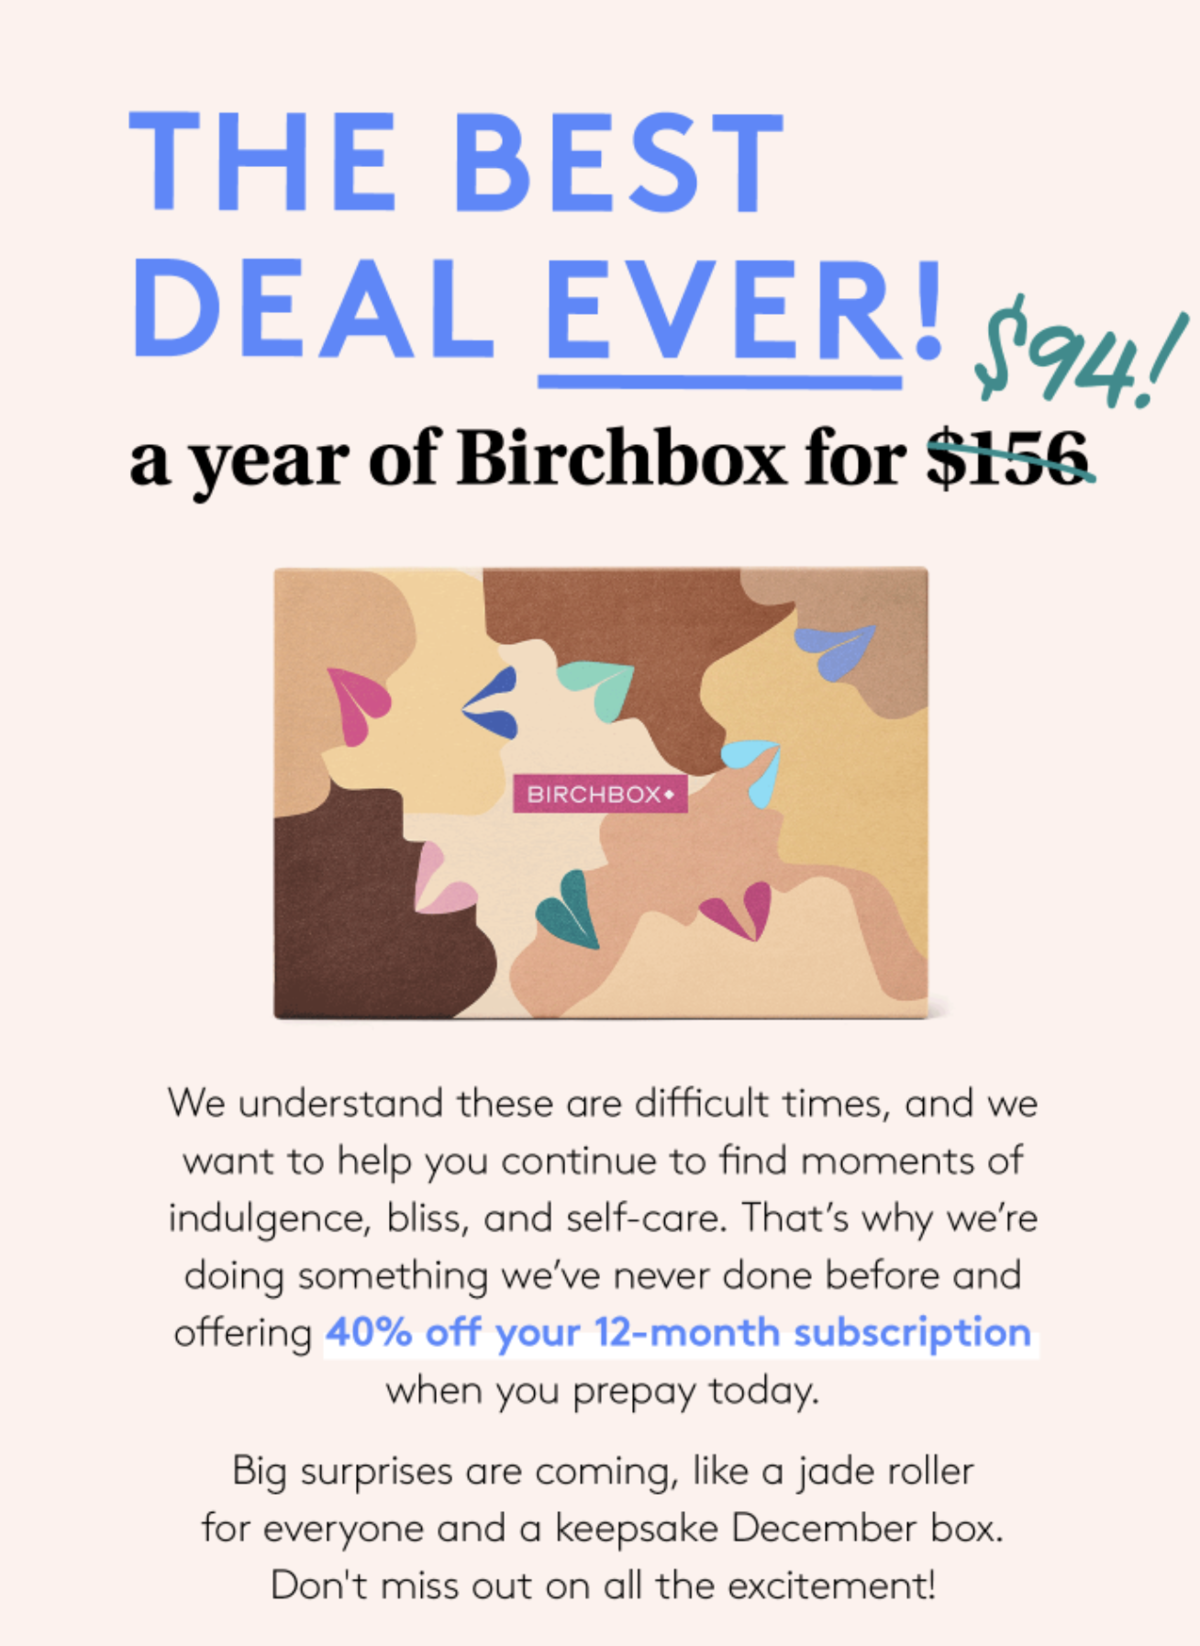 Birchbox Annual Subscription Offer – Save 40%!